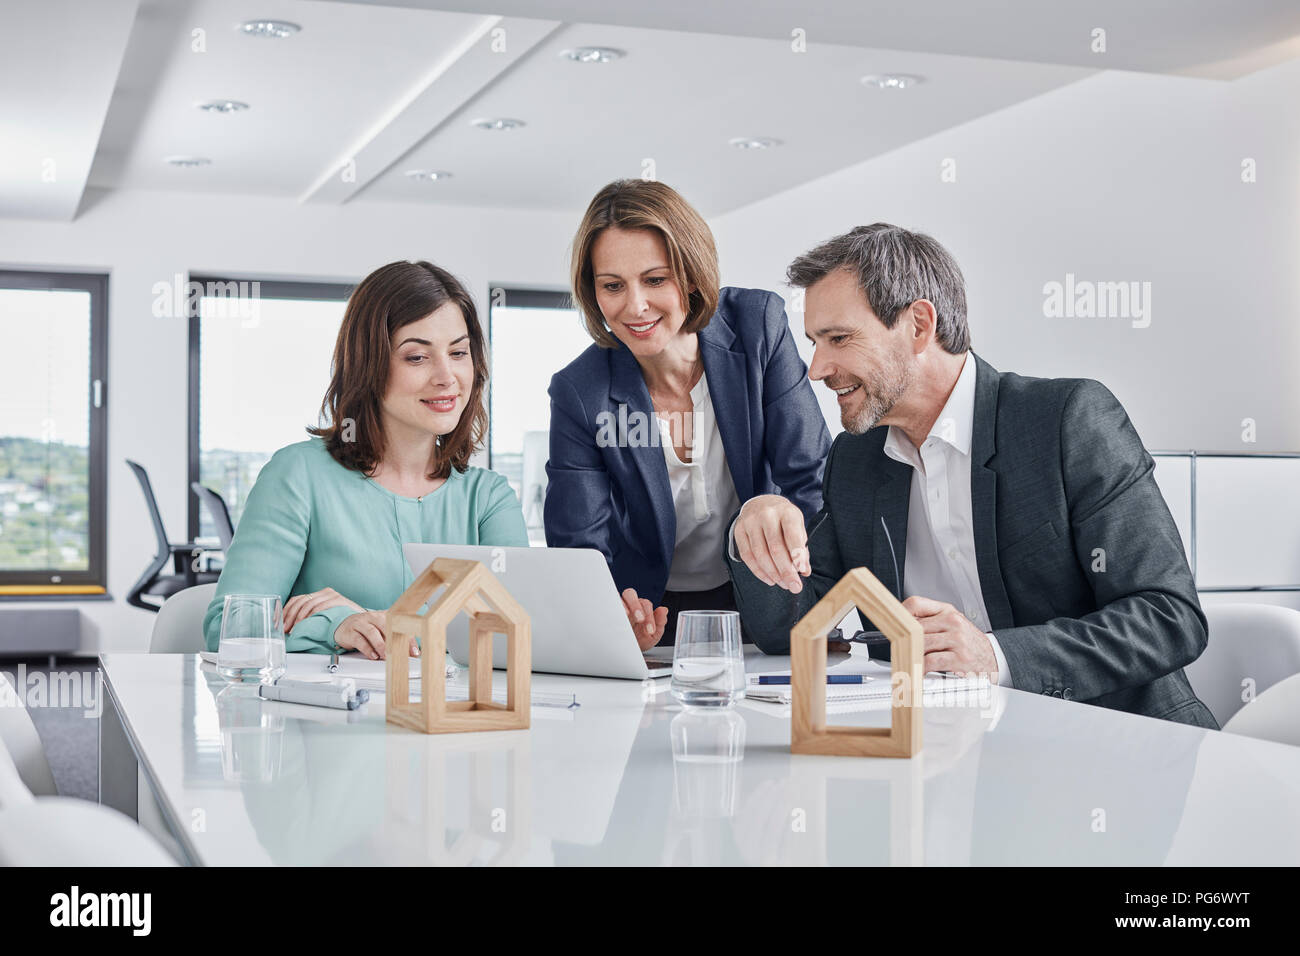 Business people having a meeting in office with laptop and architectural models - Stock Image